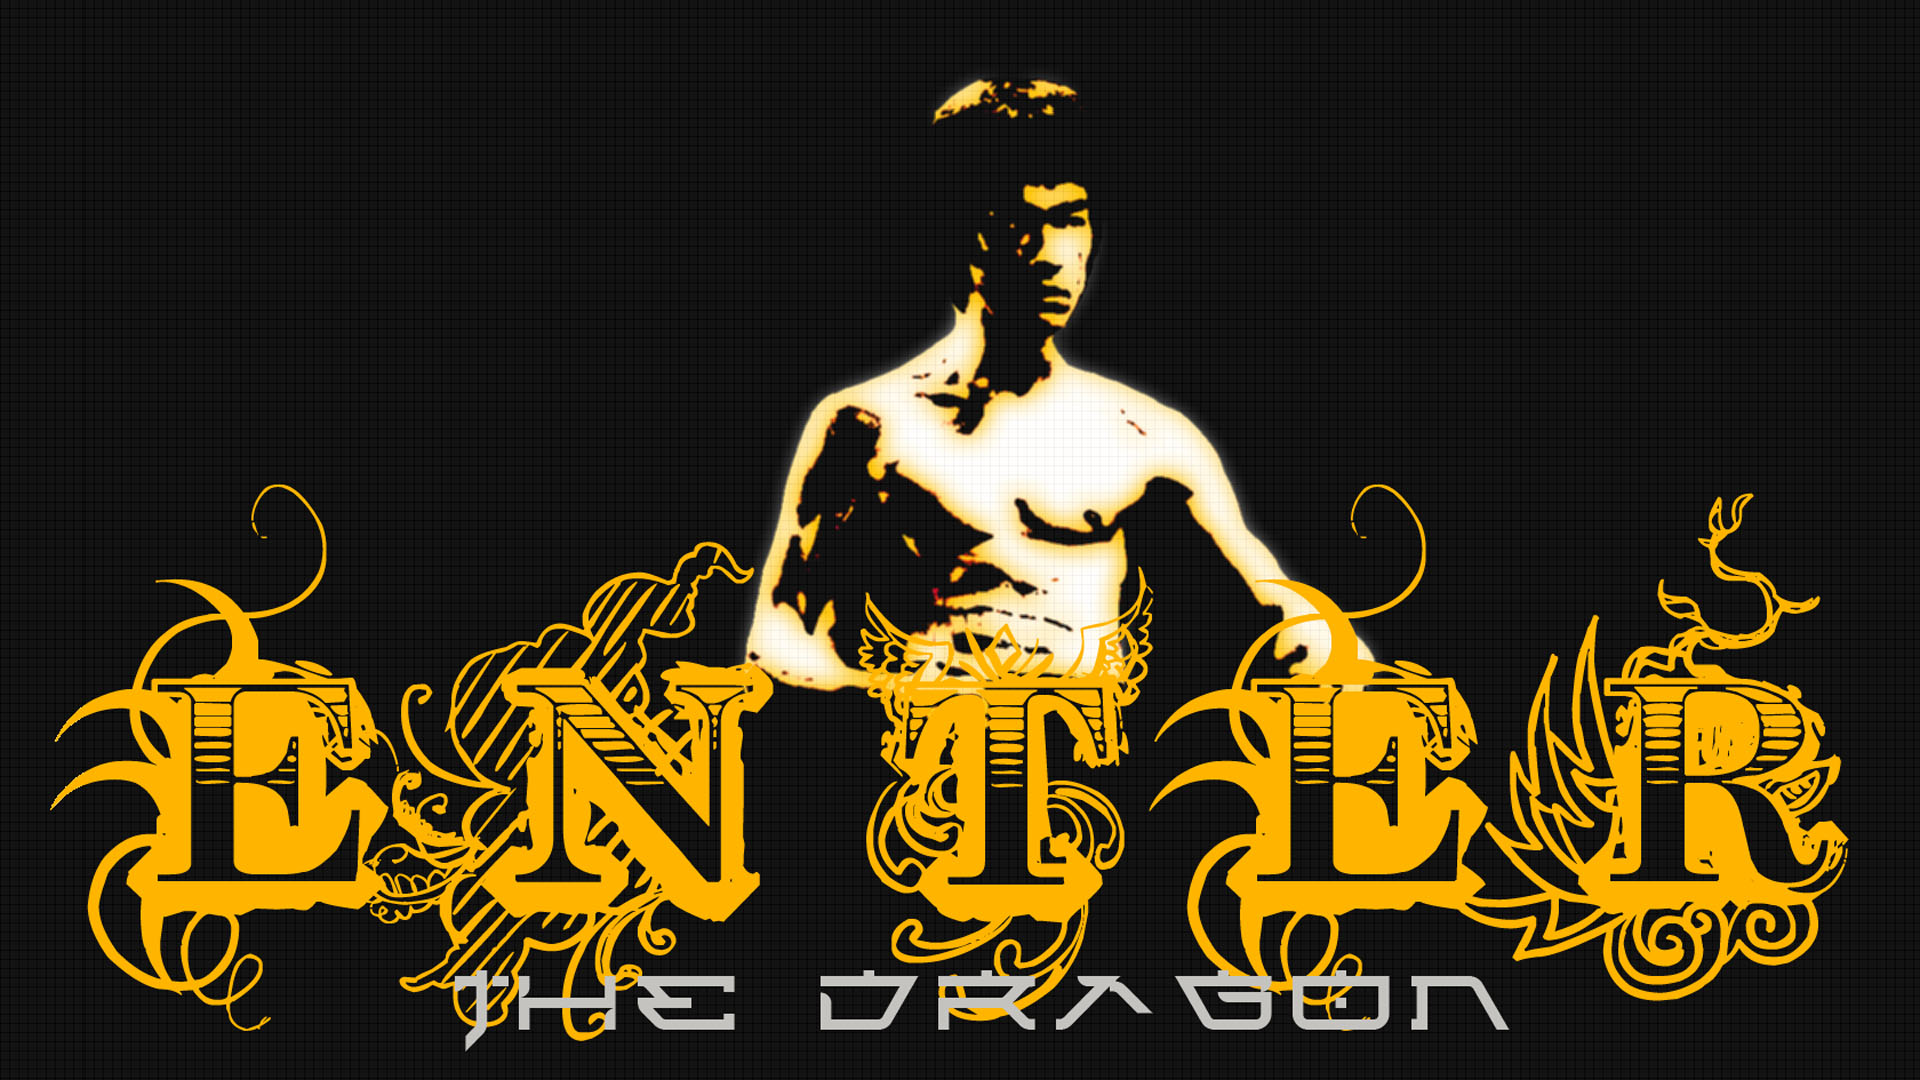 Bruce Lee Wallpaper Enter The Dragon Bruce lee wallpaper 1920x1080